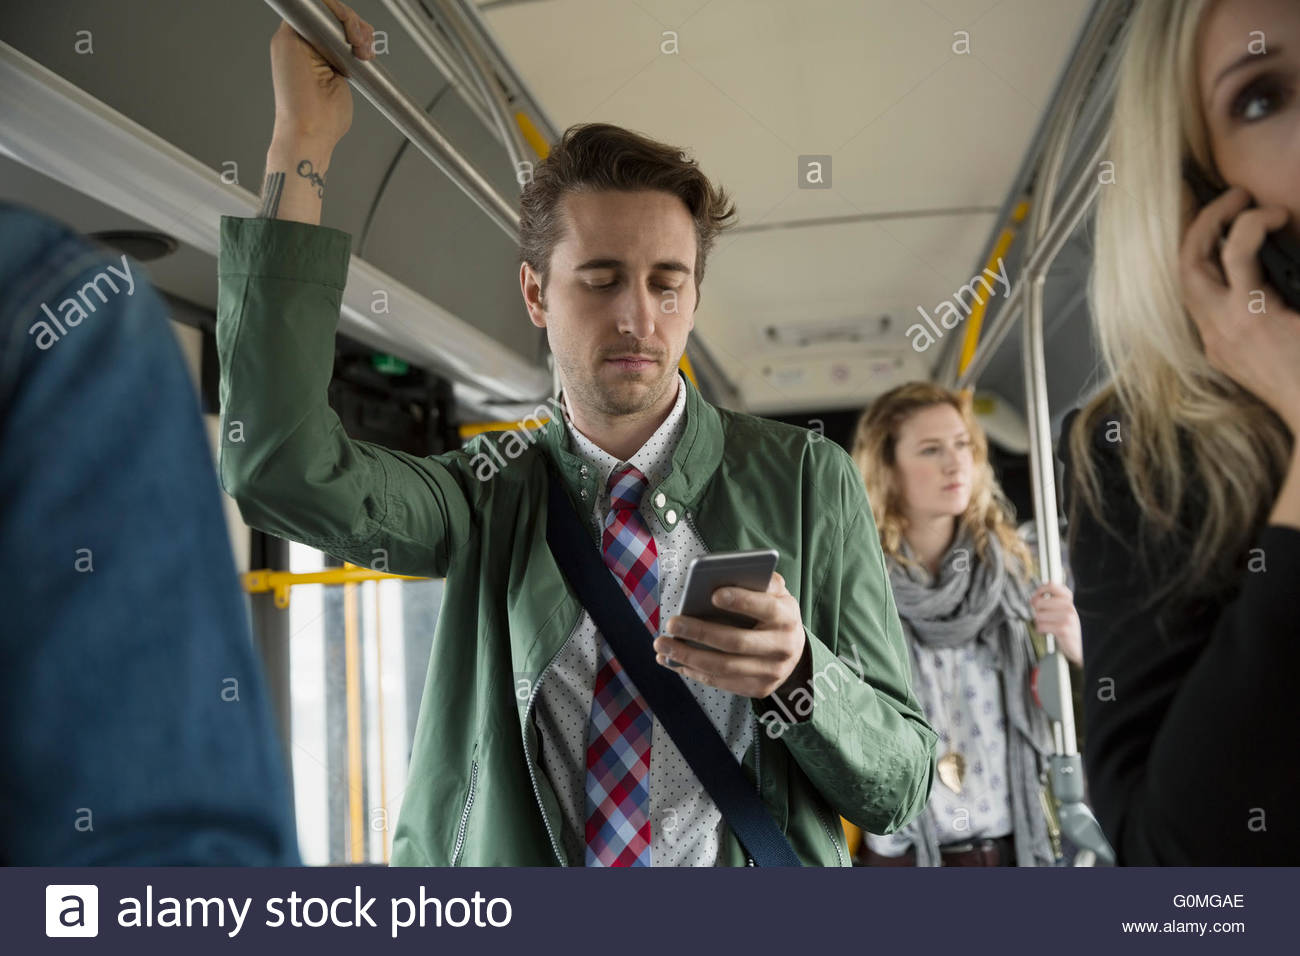 Businessman texting with cell phone standing on bus - Stock Image